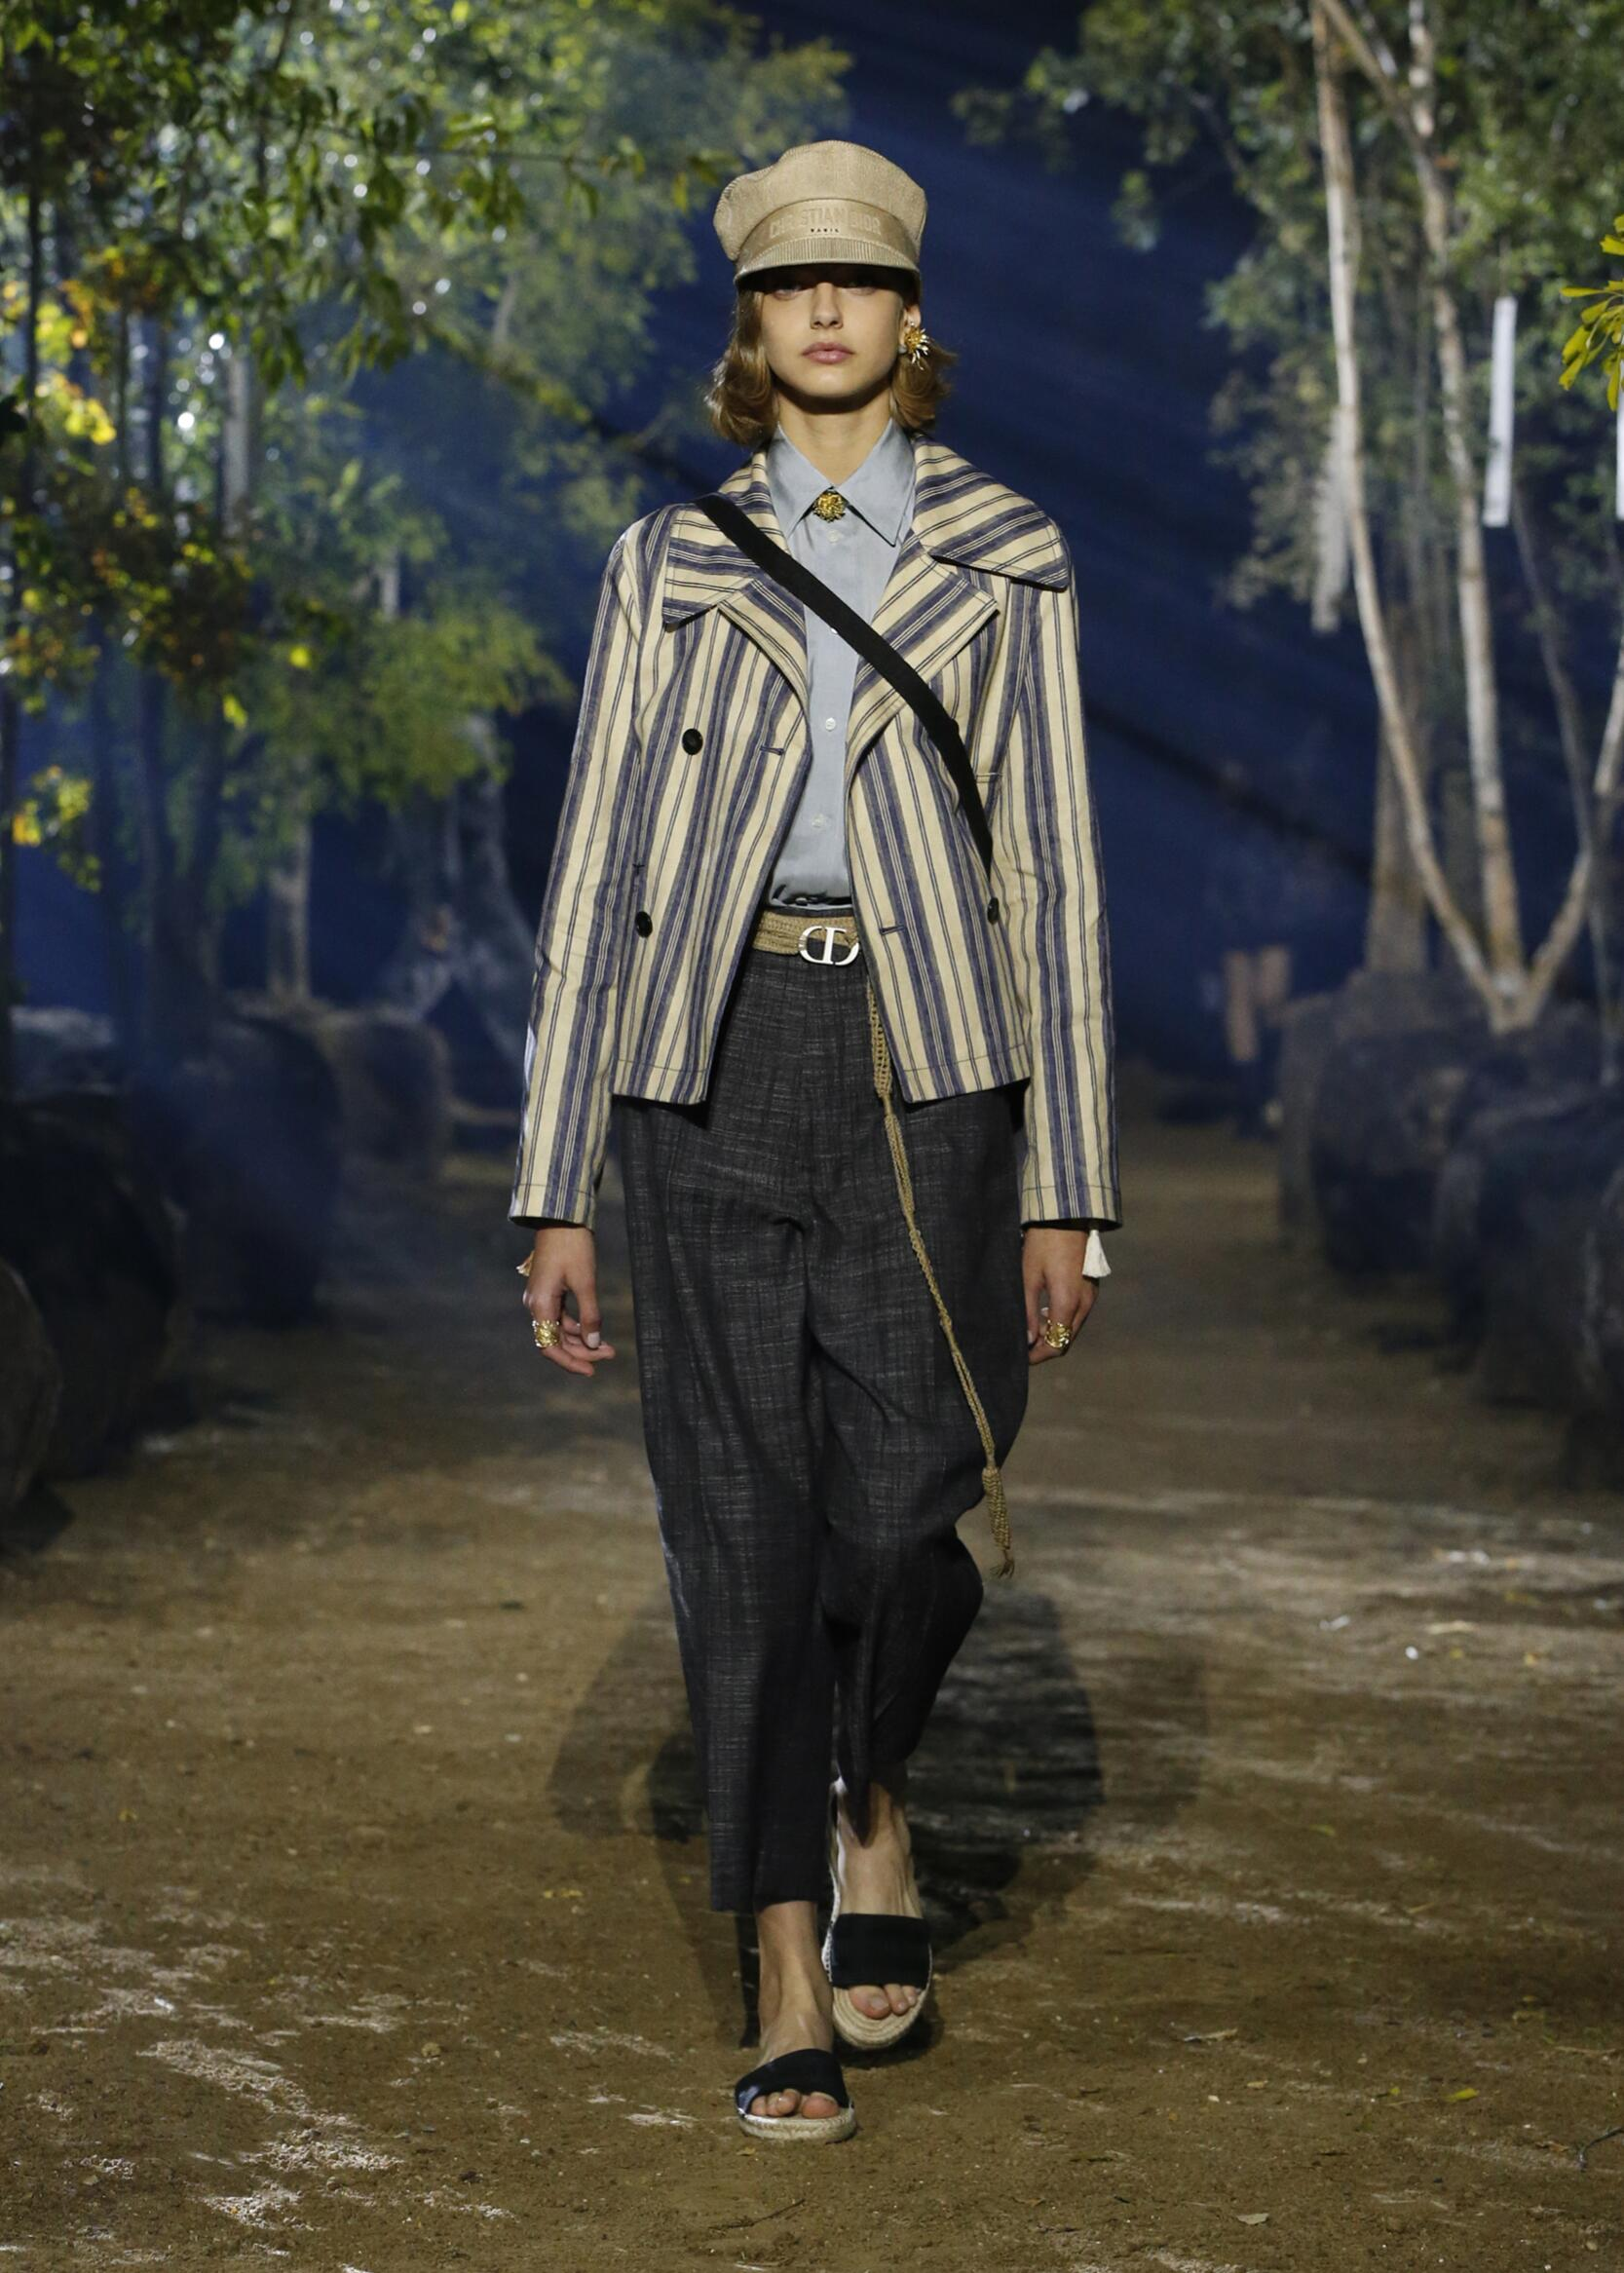 Dior Womenswear Collection Trends Summer